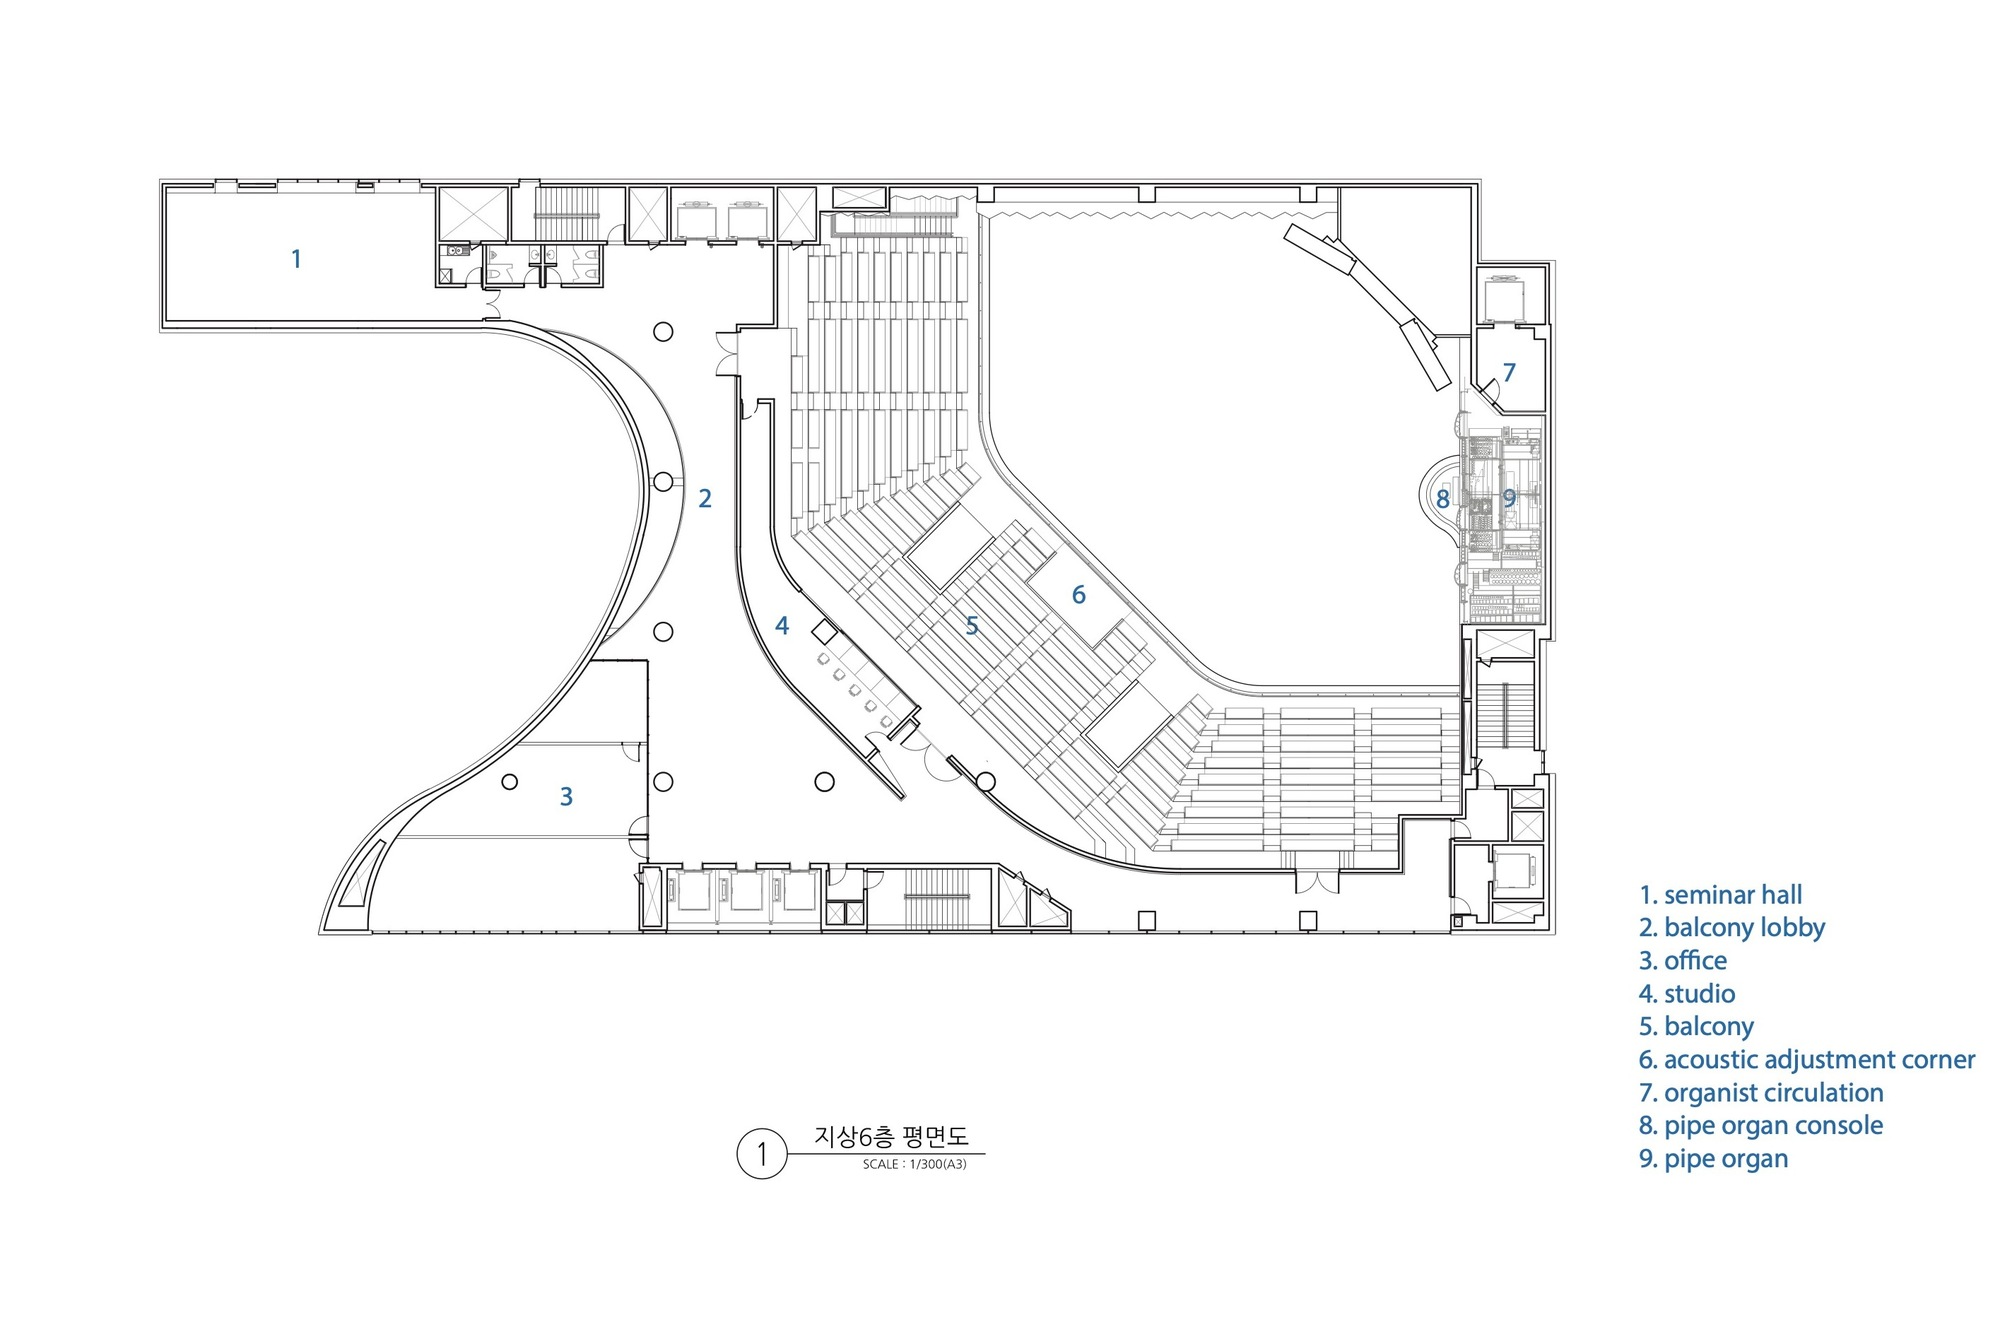 19_Drawing_6F_Floor_Plan.jpg